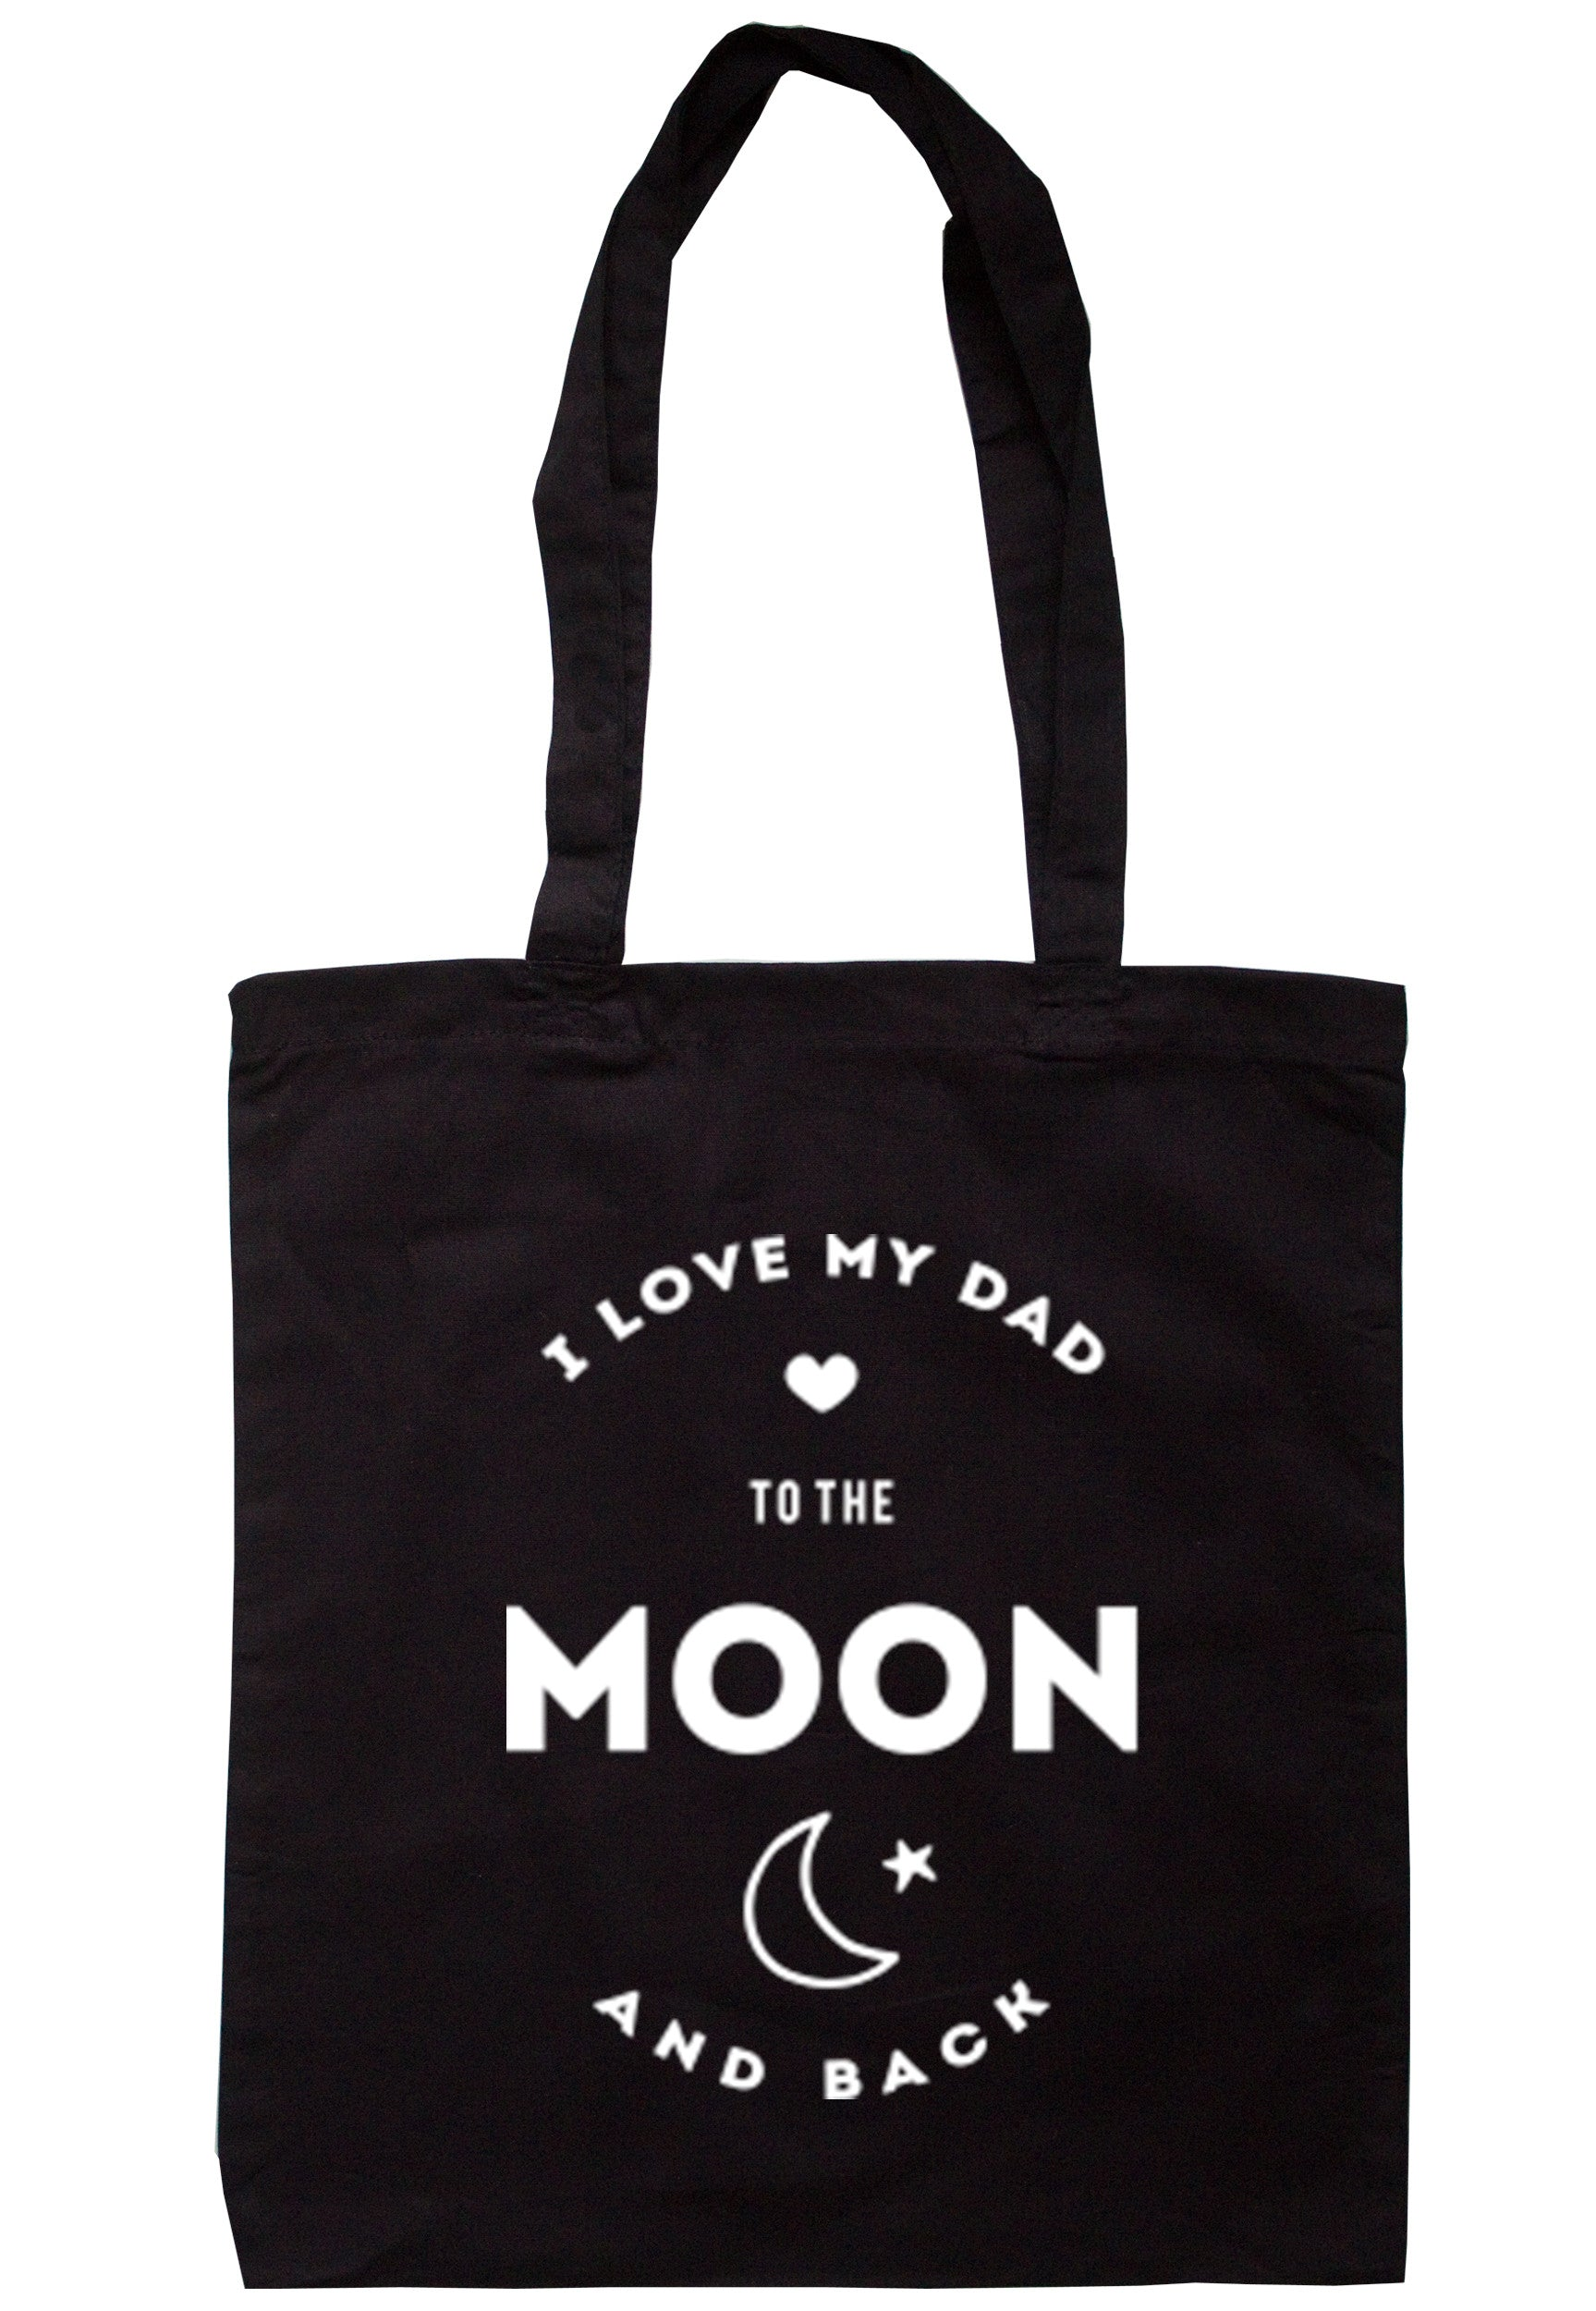 I Love My Dad To The Moon And Back Tote Bag TB0207 - Illustrated Identity Ltd.